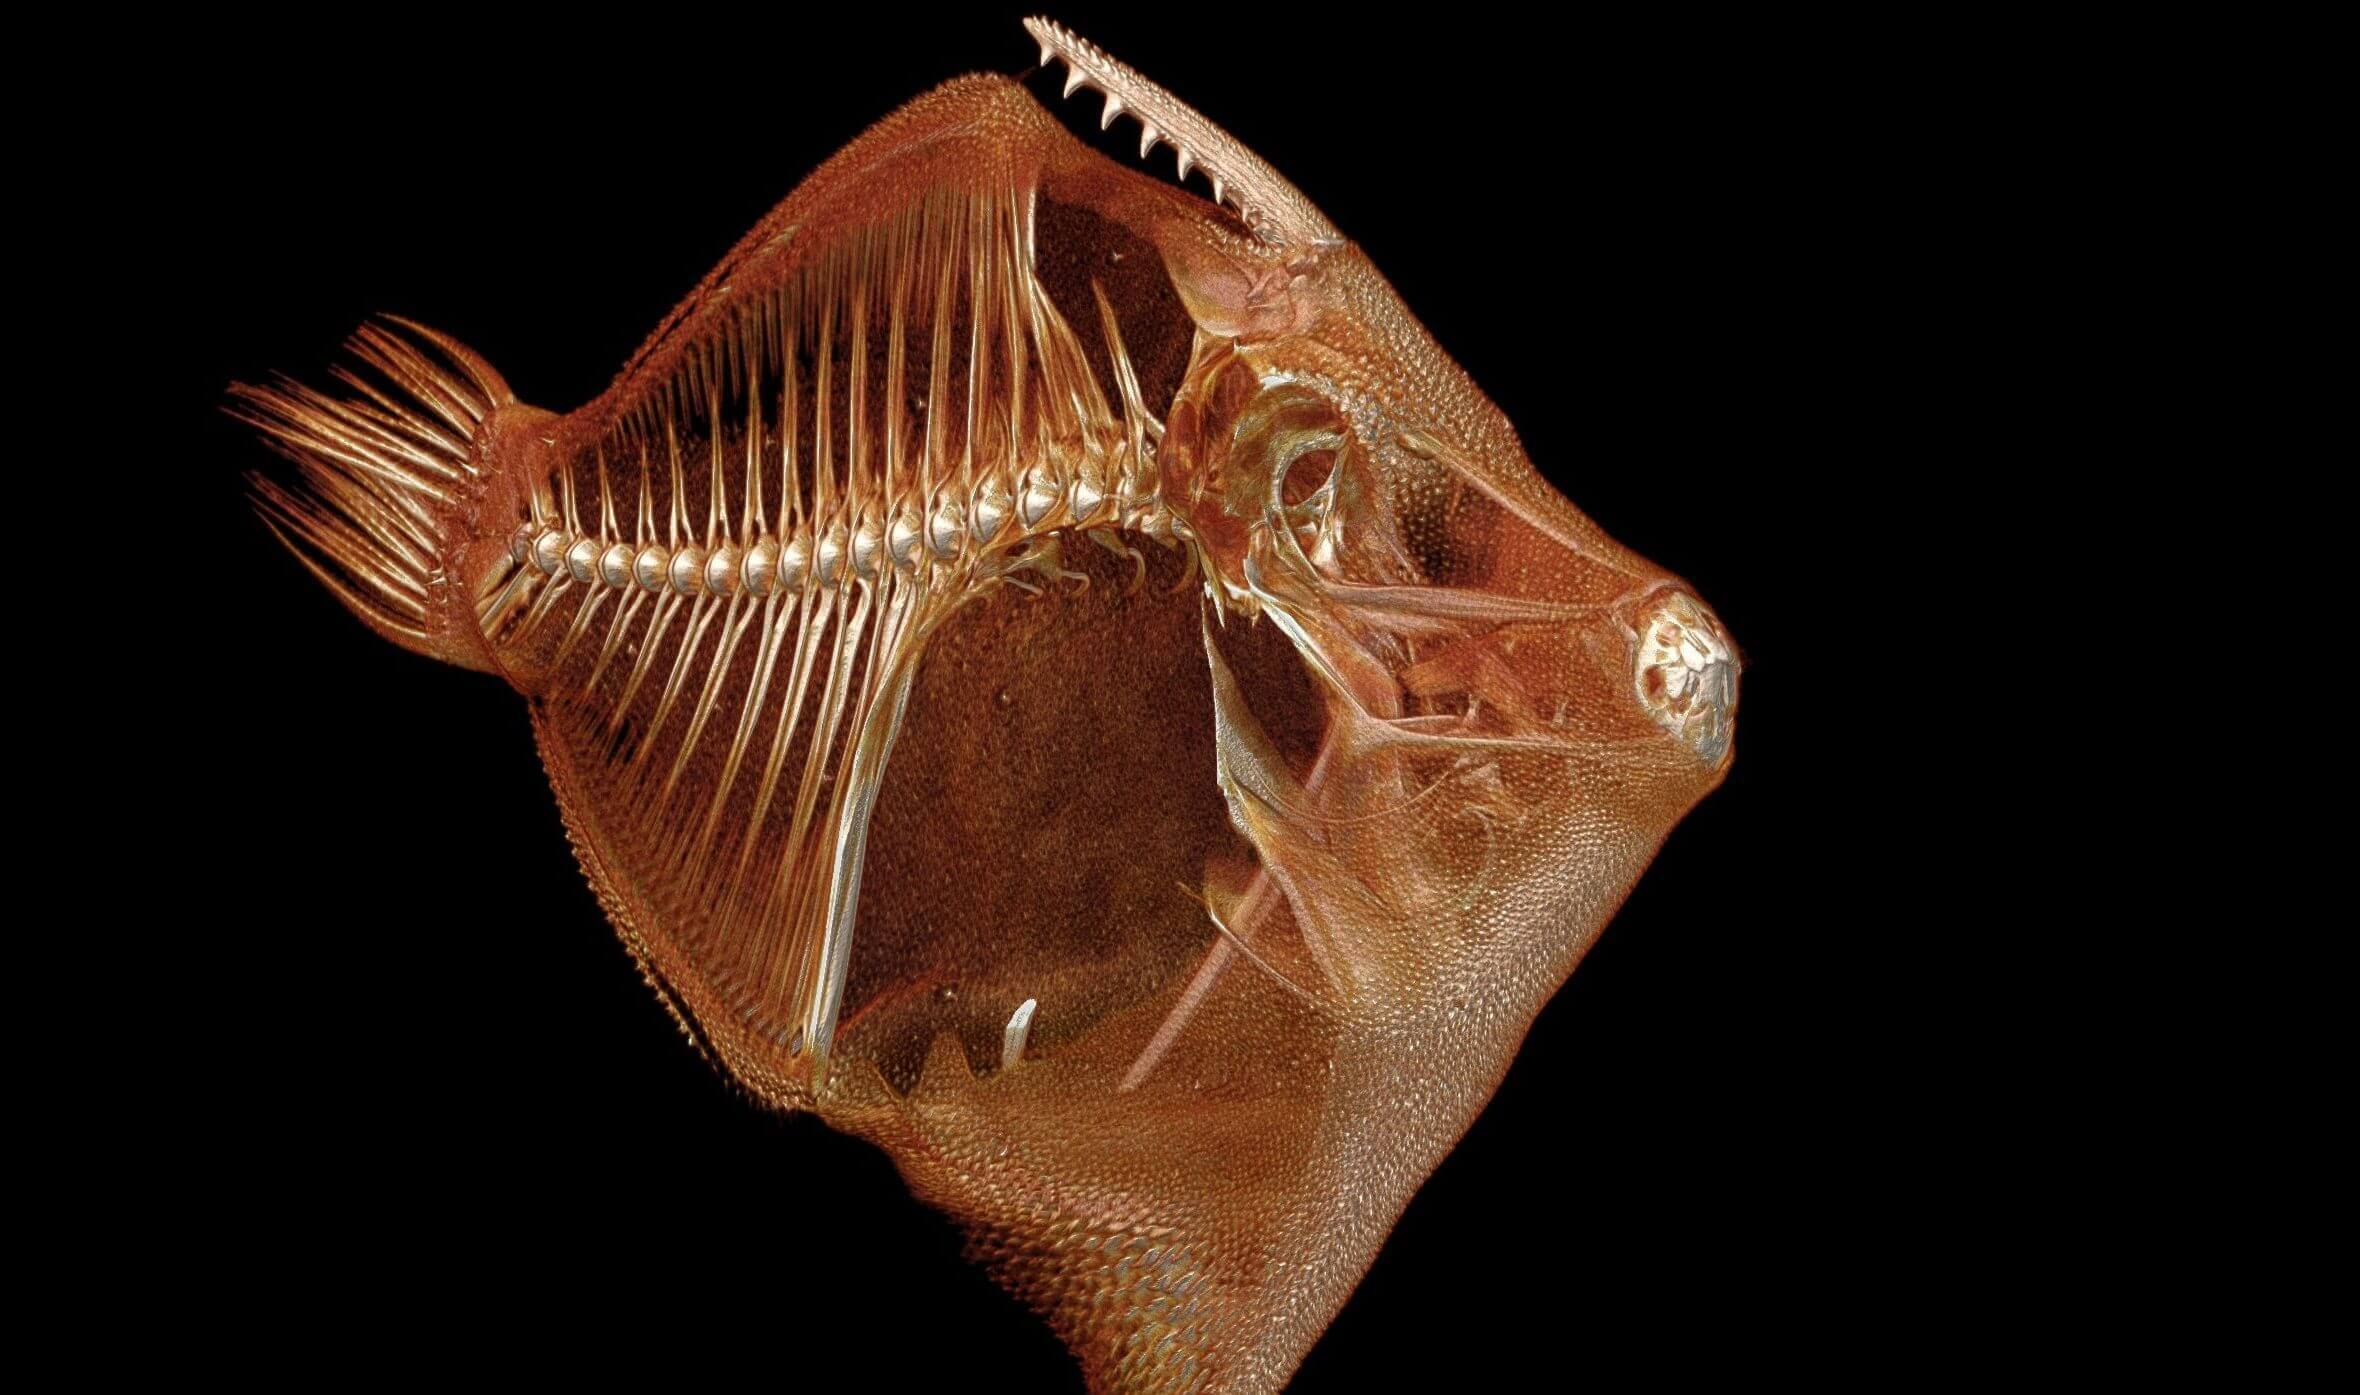 ScanAllFish Project Turning World's Fish into 3D Scans | All3DP